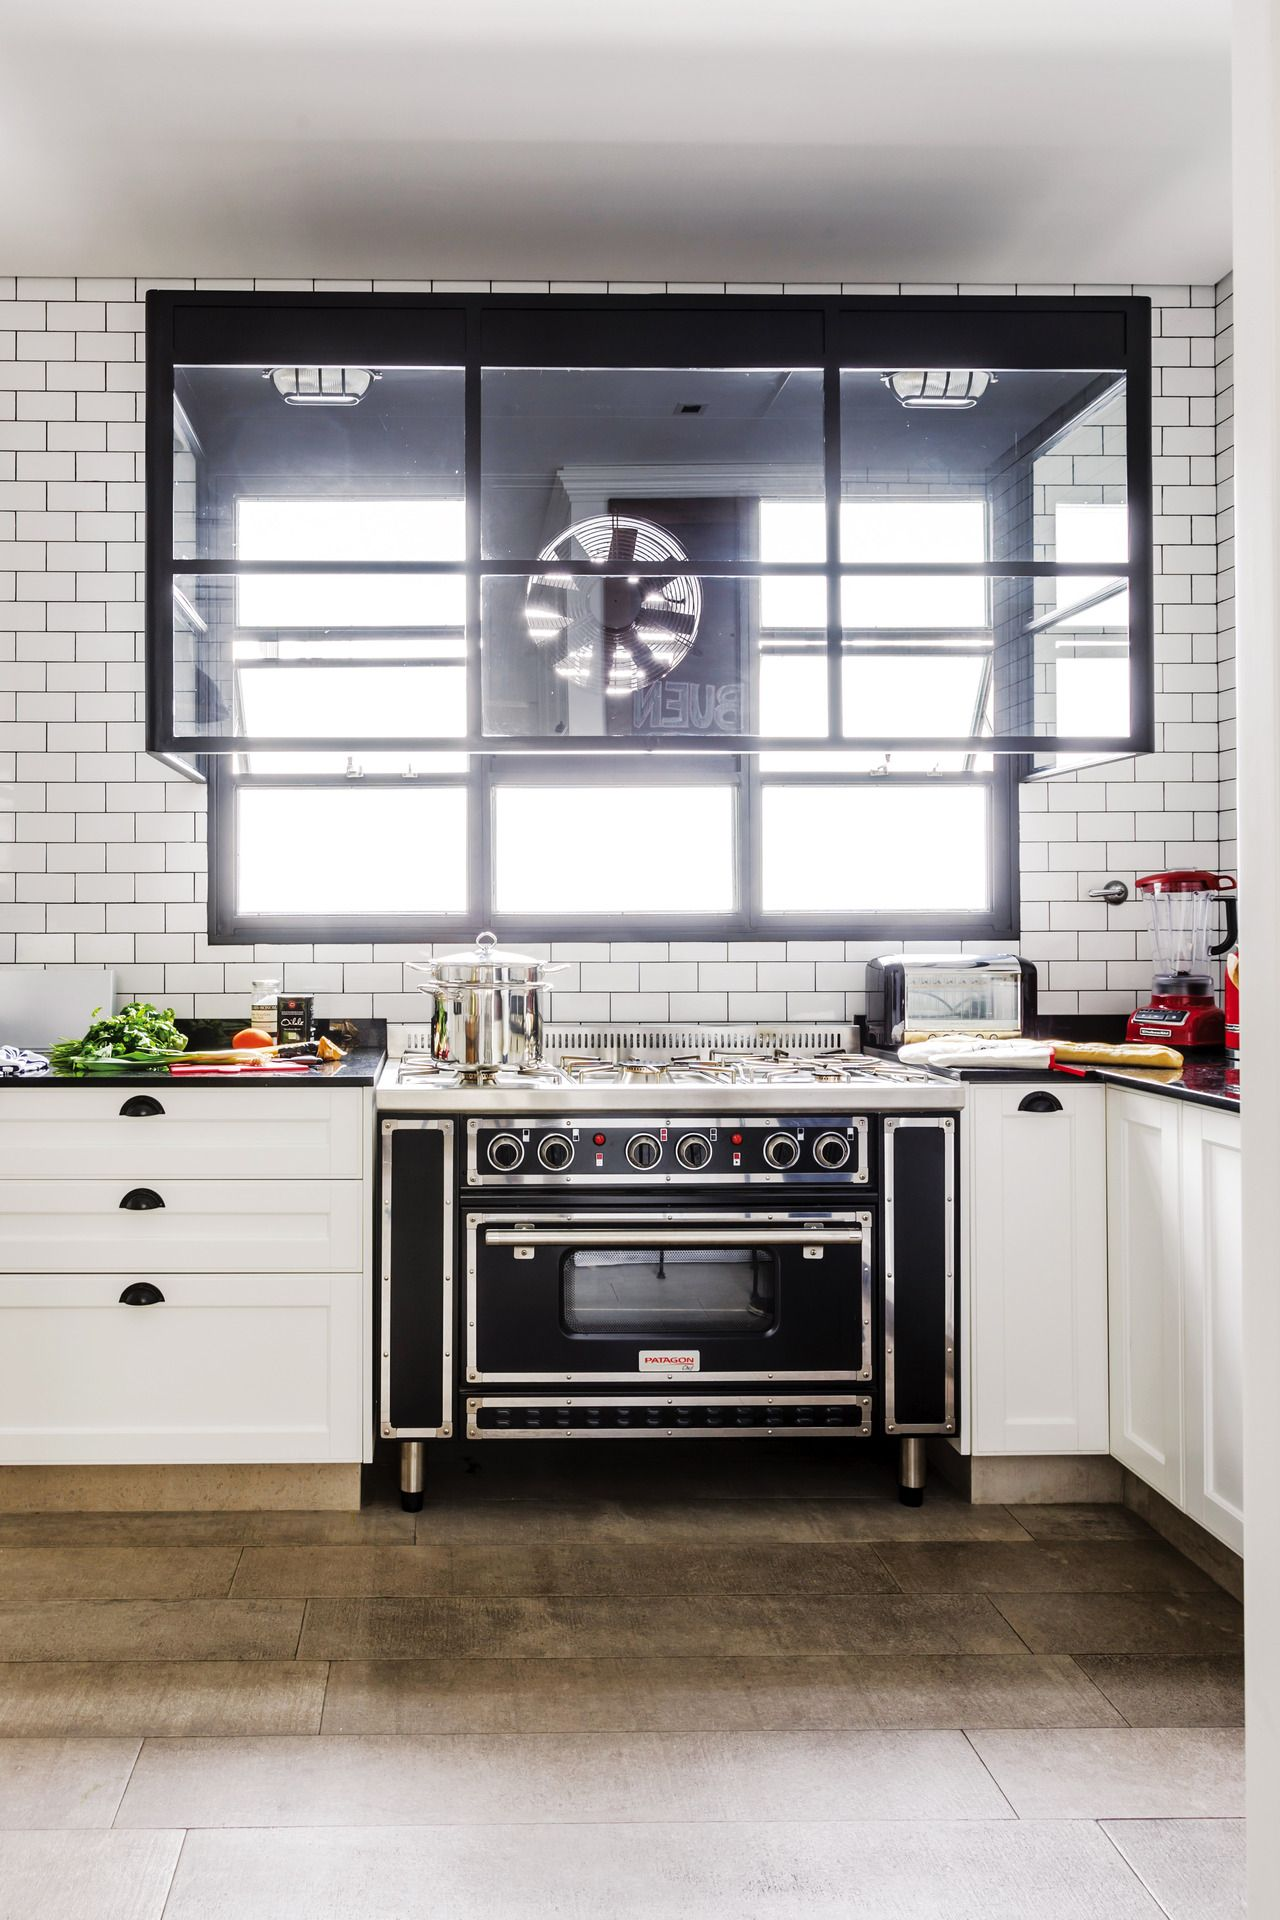 Una cocina con subway tiles y carpinter a de hierro